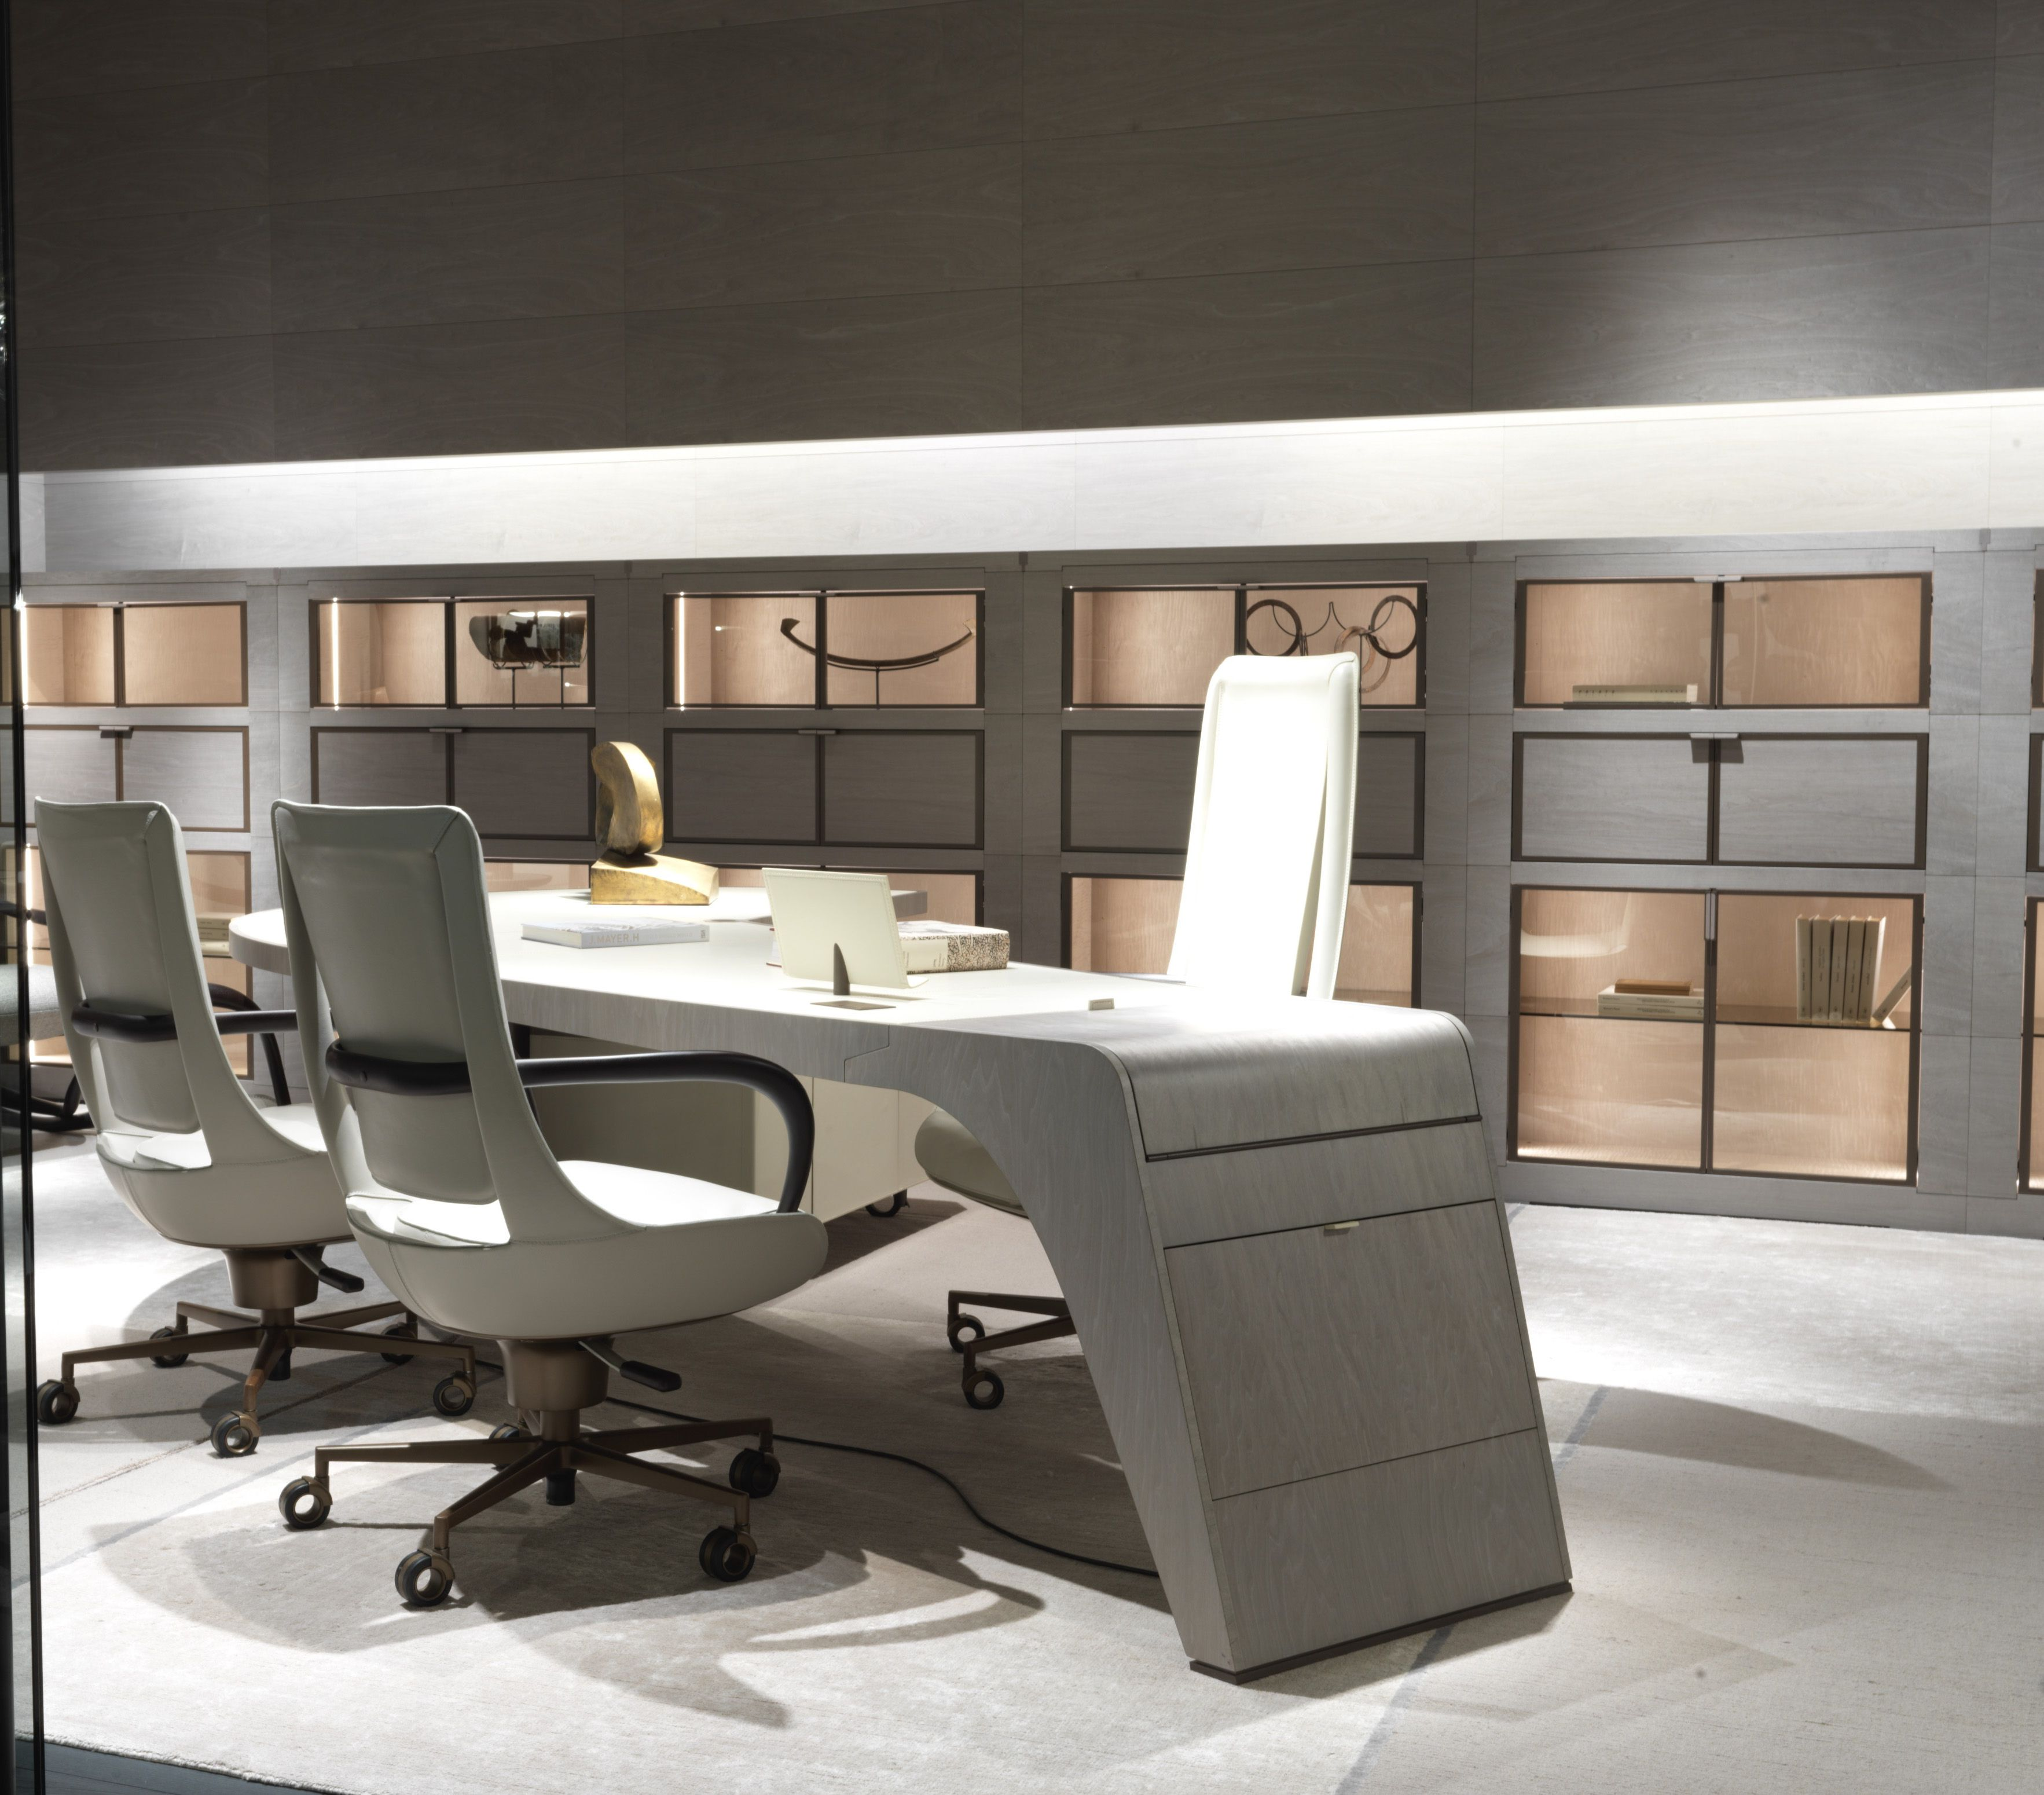 Office Area, Booth at the Salone del Mobile in